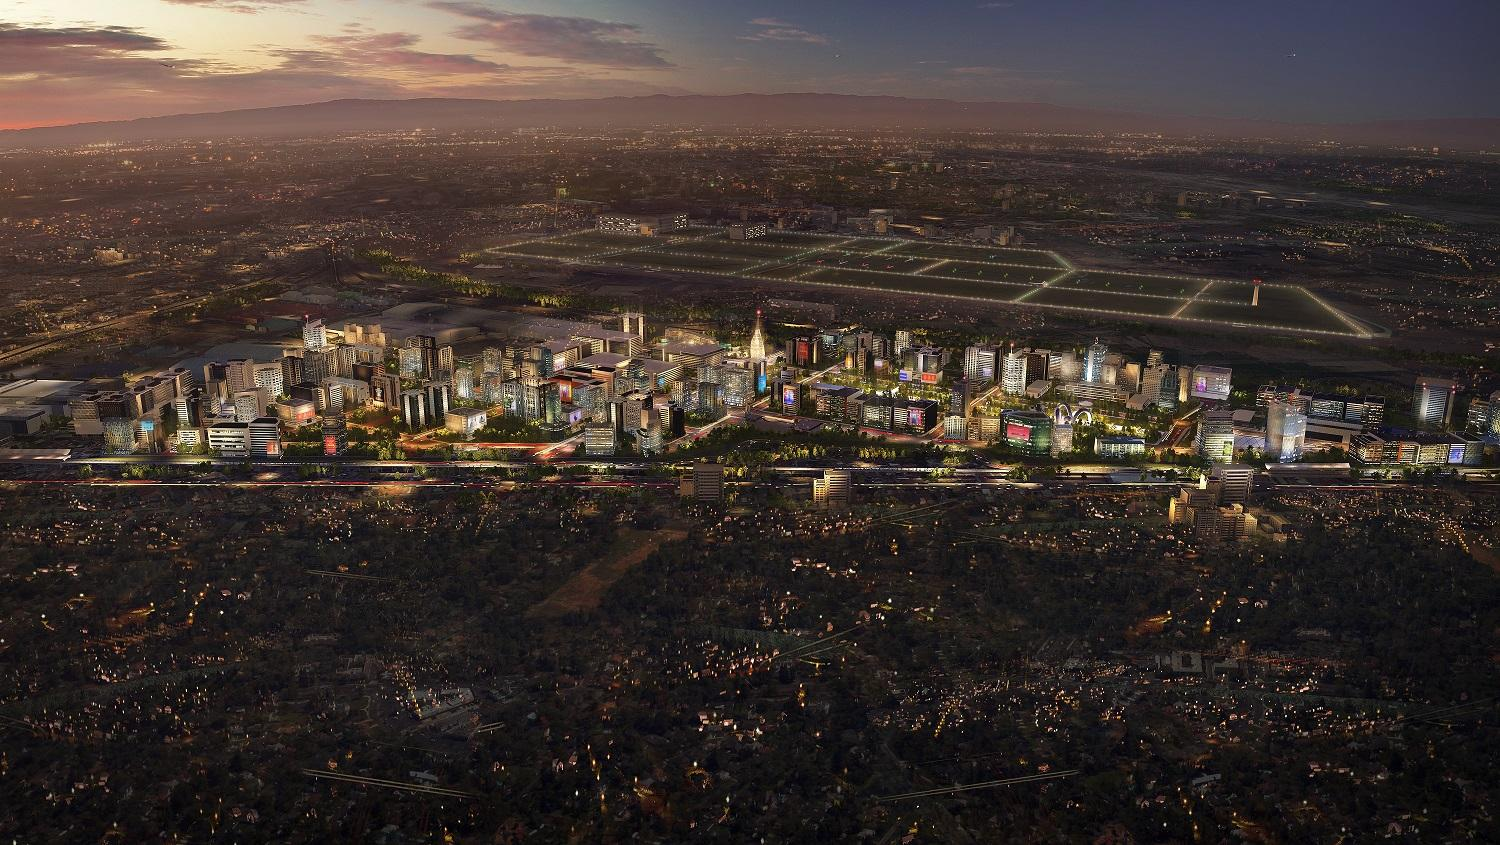 Clark Global City – The Philippines' New Center